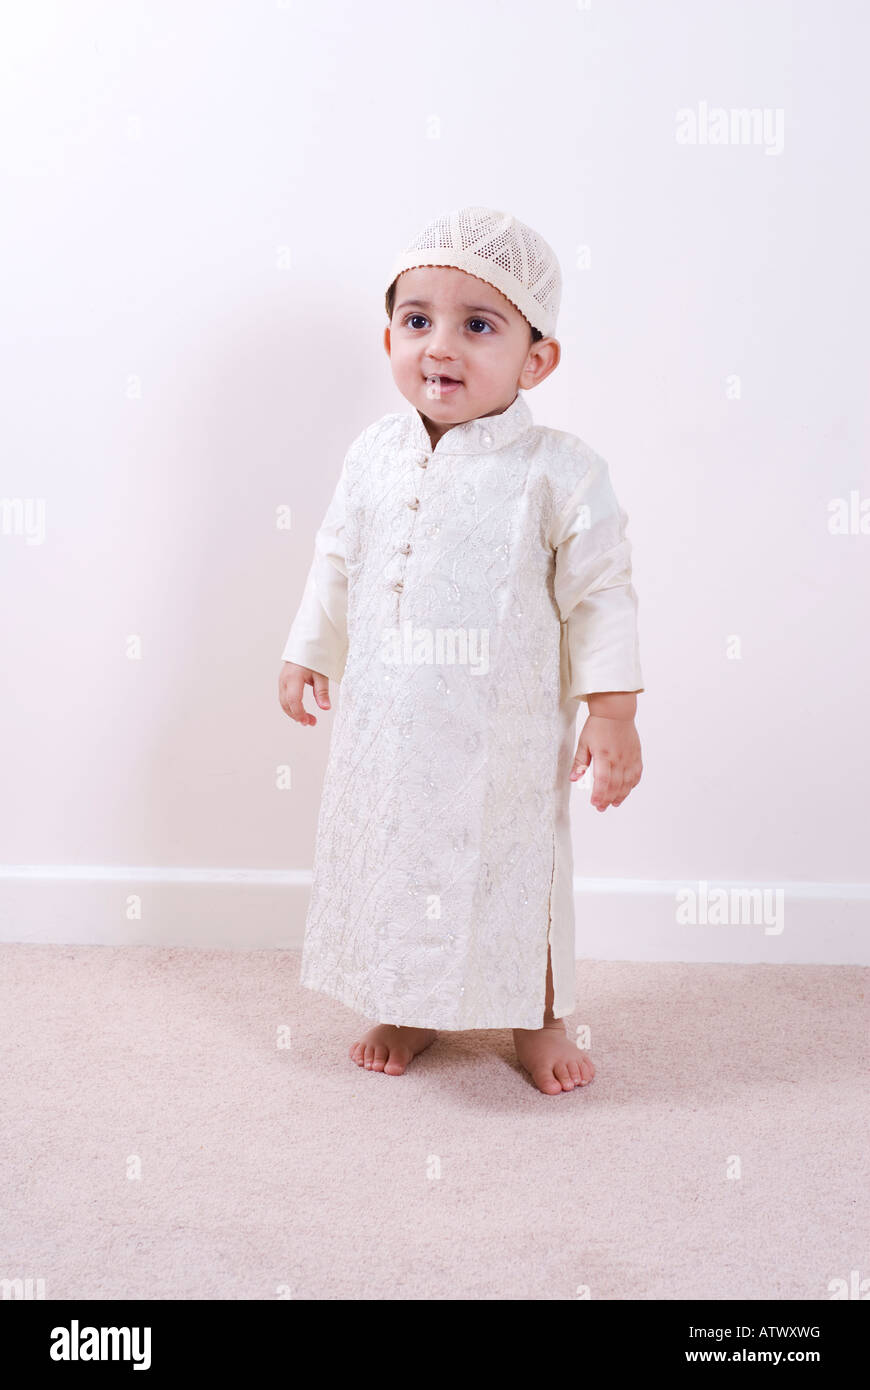 One year old Arabic boy wearing traditional Islamic outfit ...